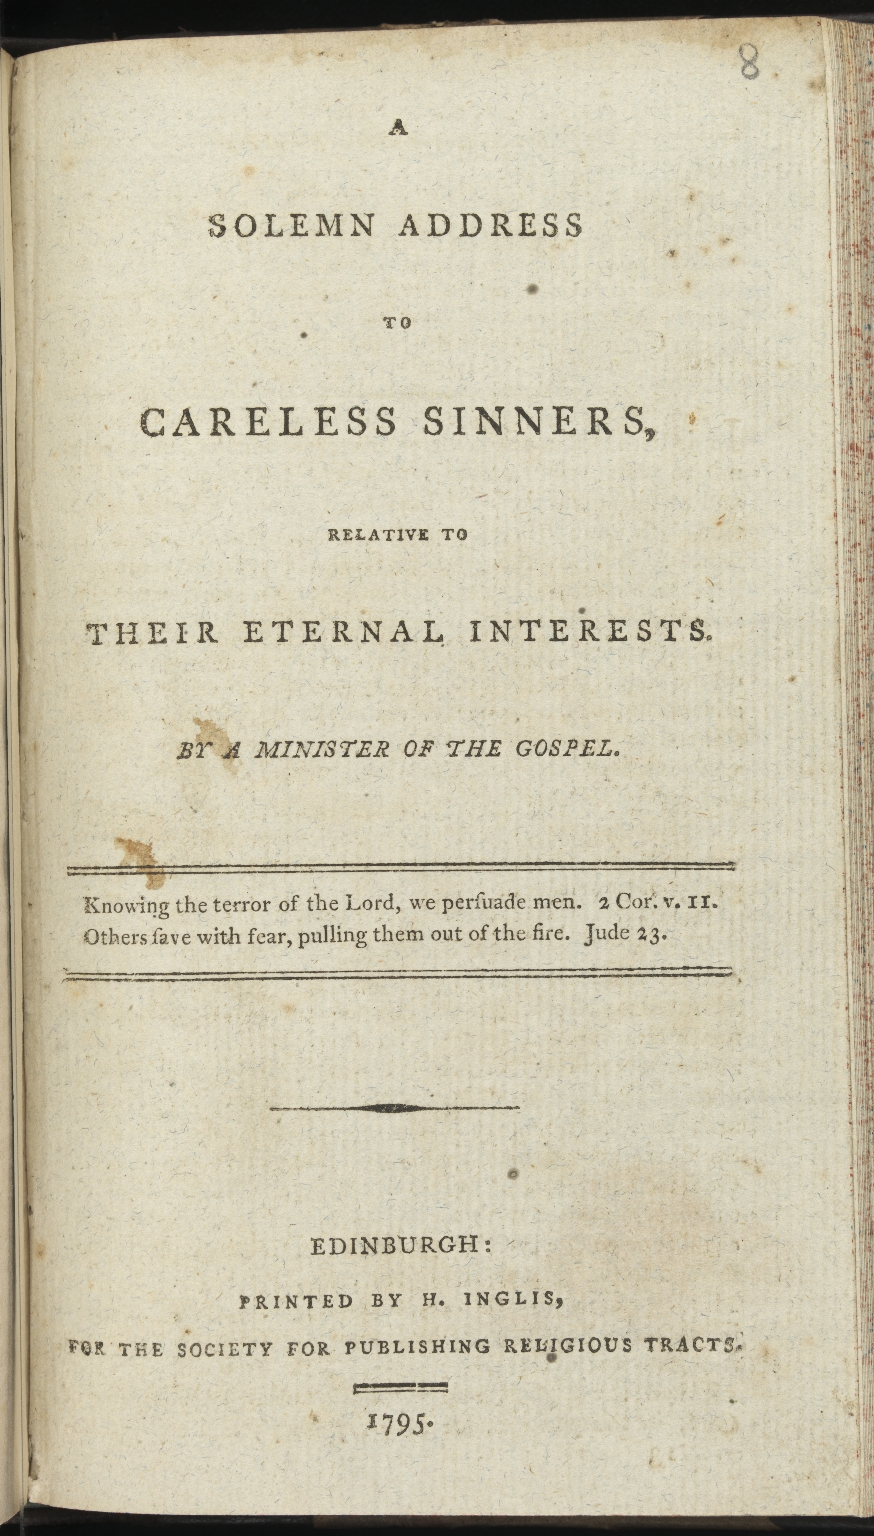 A solemn address to careless sinners, Title page